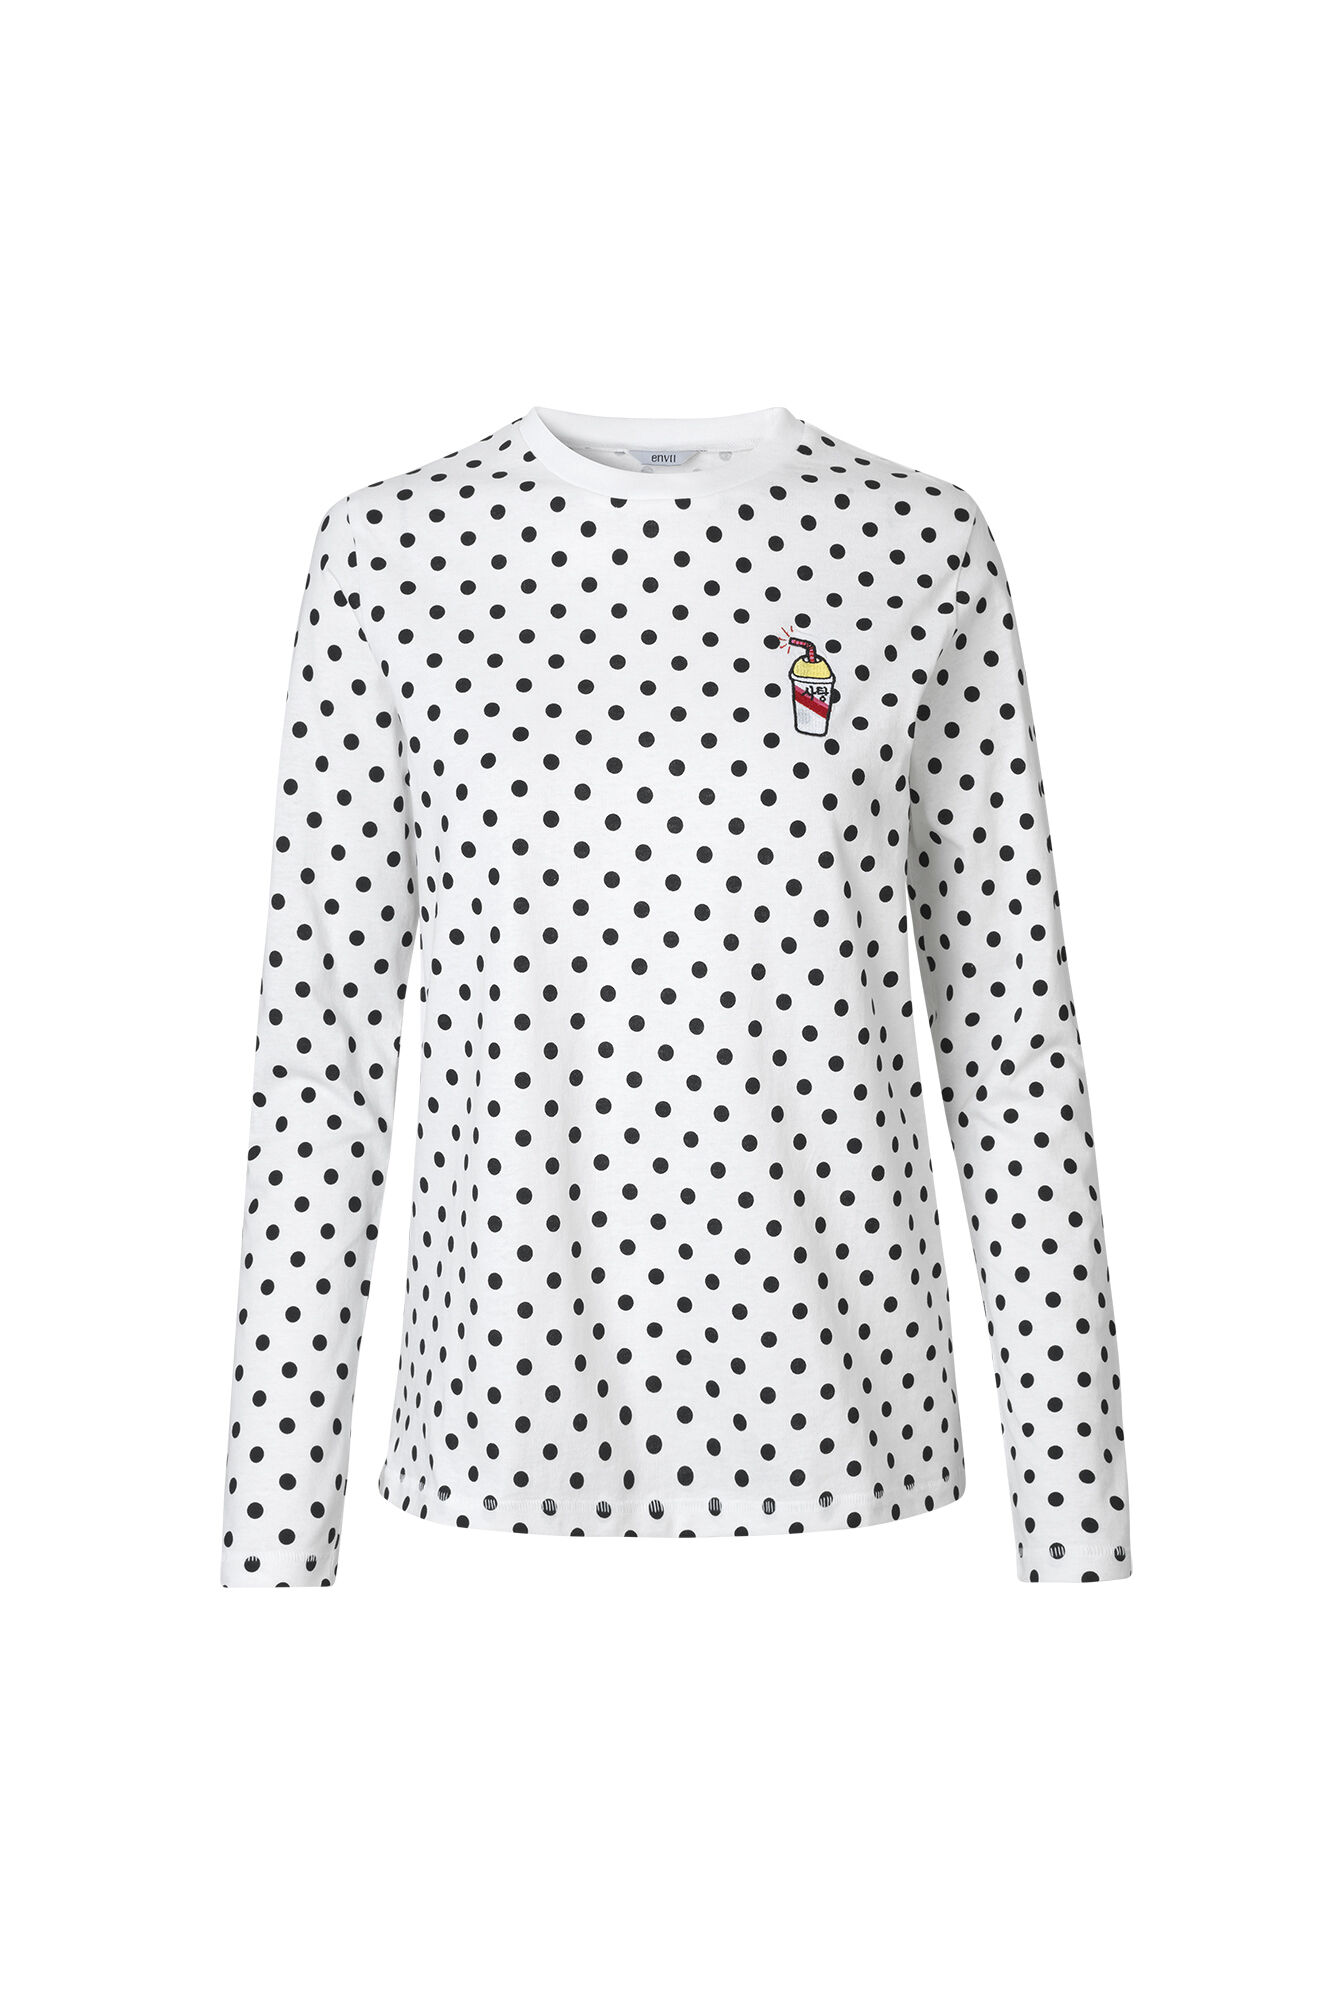 ENMOTO LS TEE AOP SHAKE 5901, WHITE DOT BIG